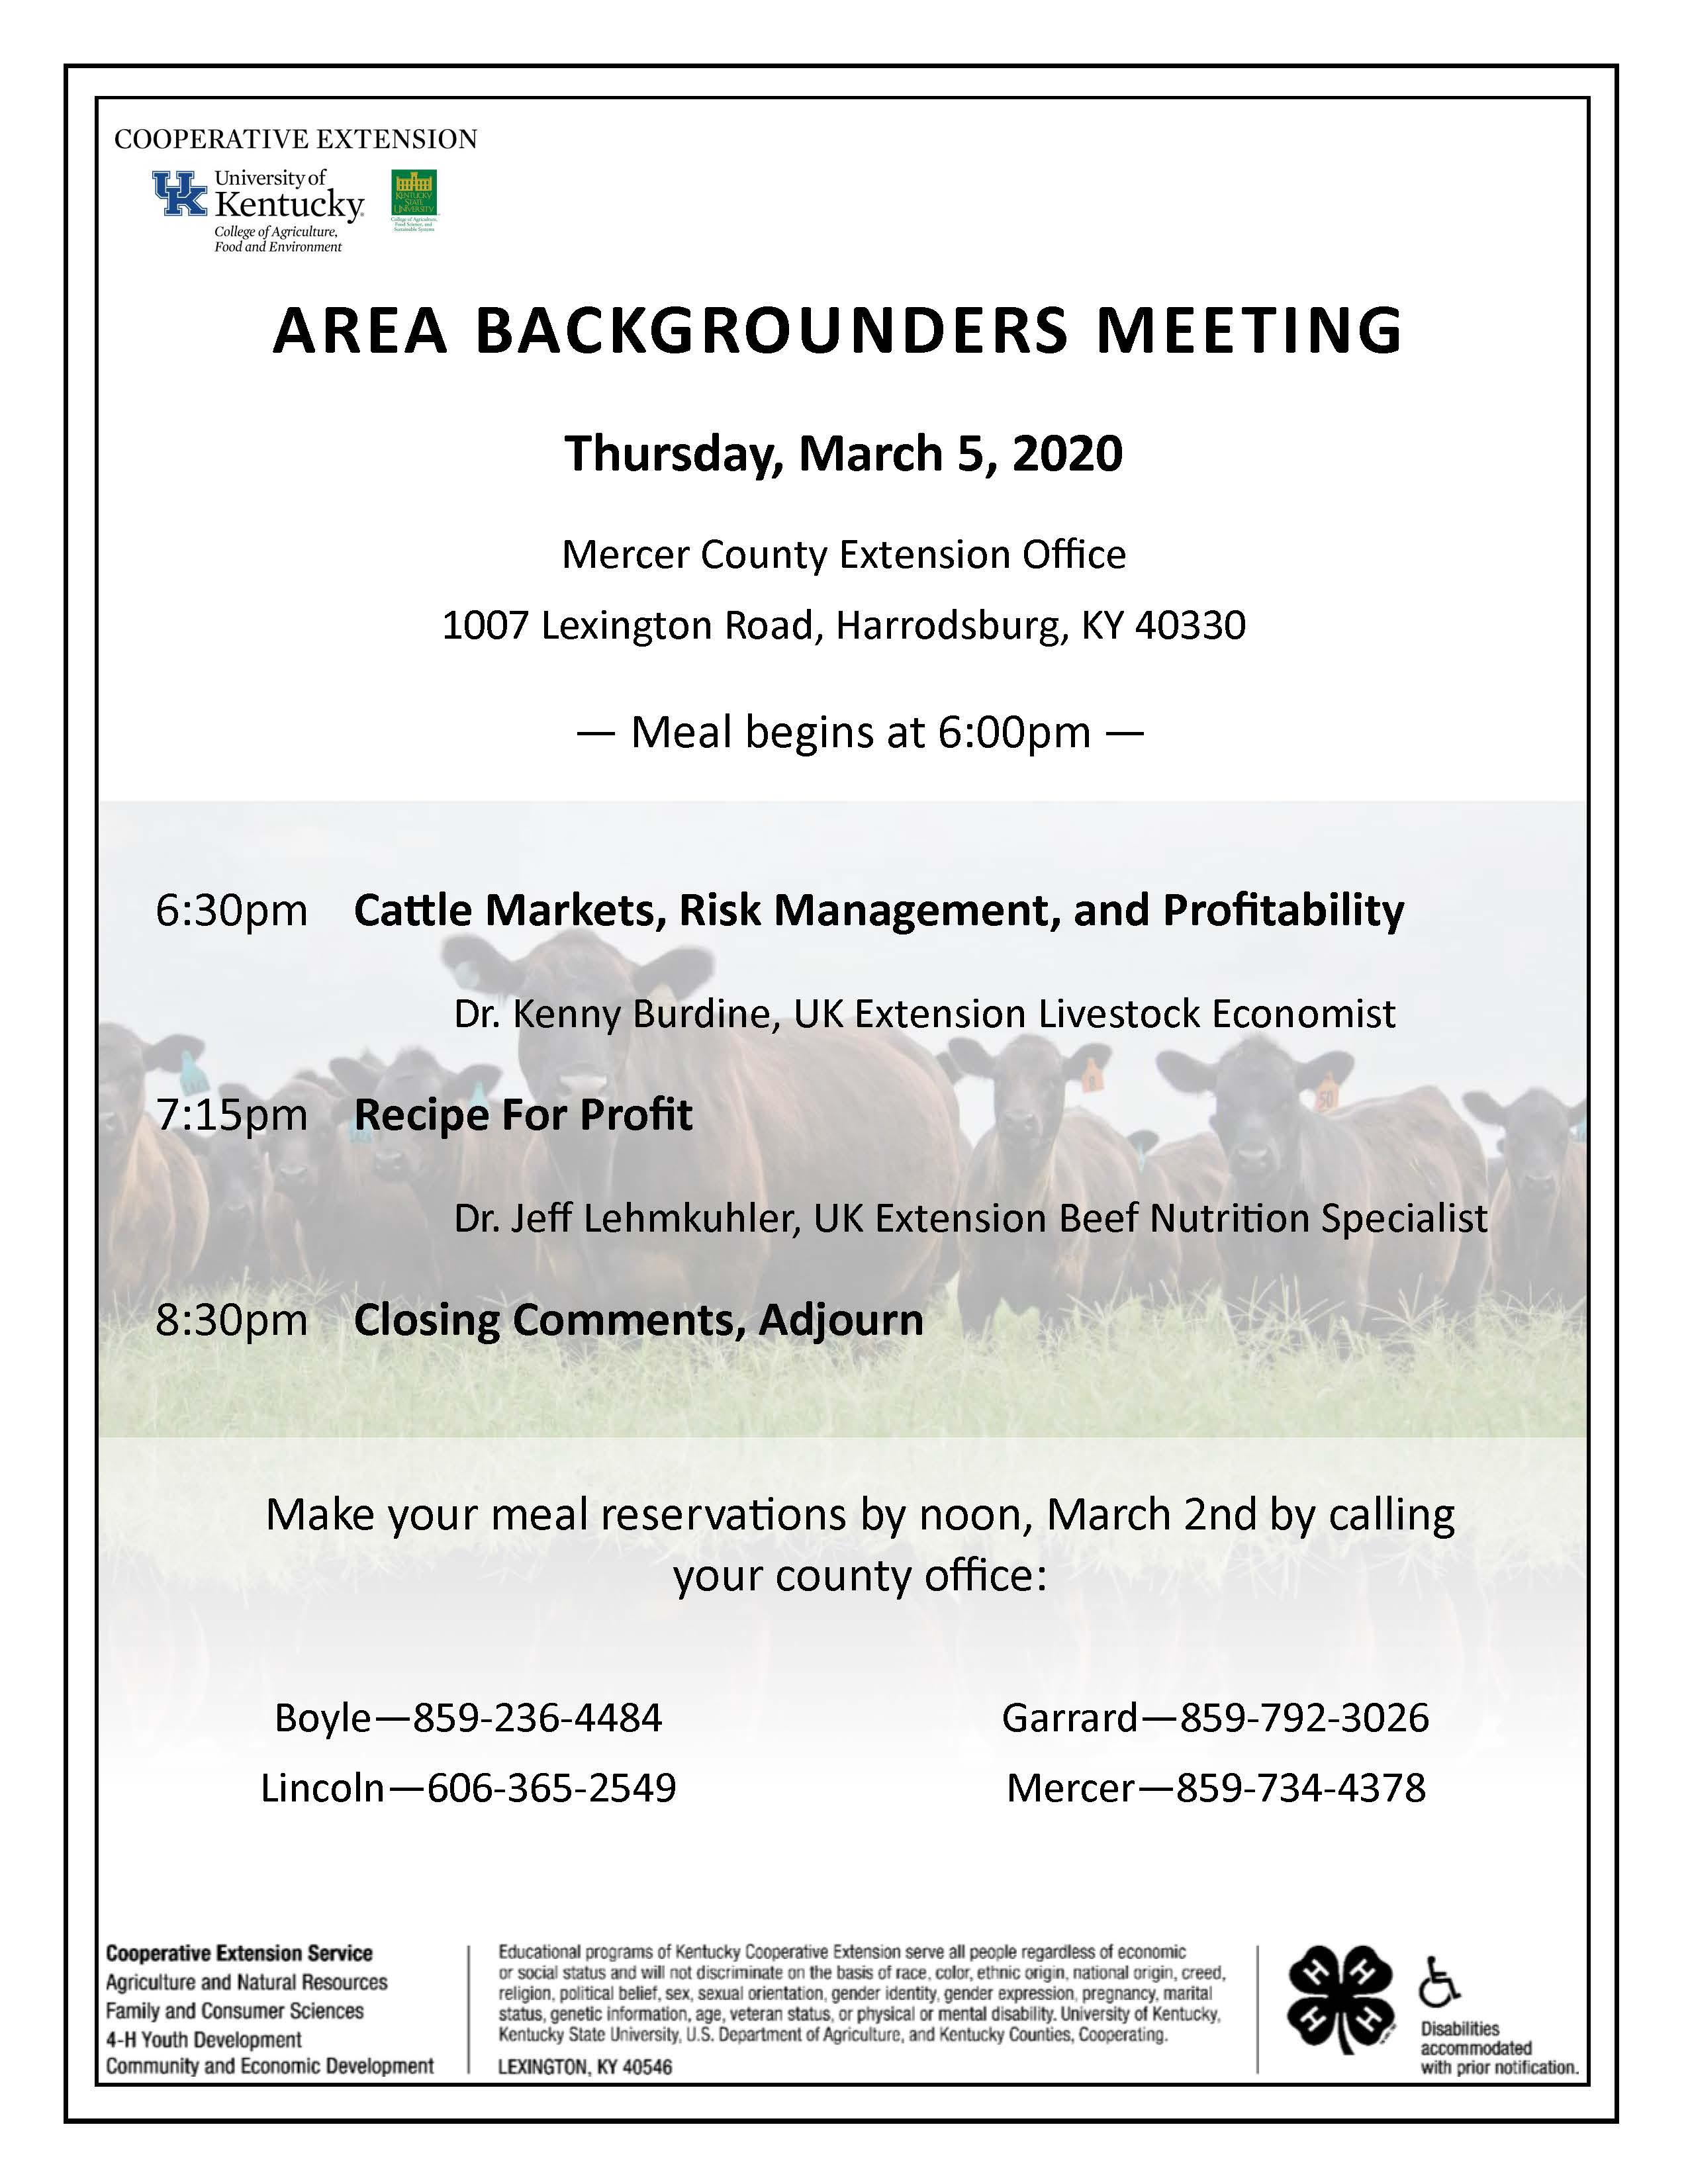 March 5 - Area Backgrounders Meeting